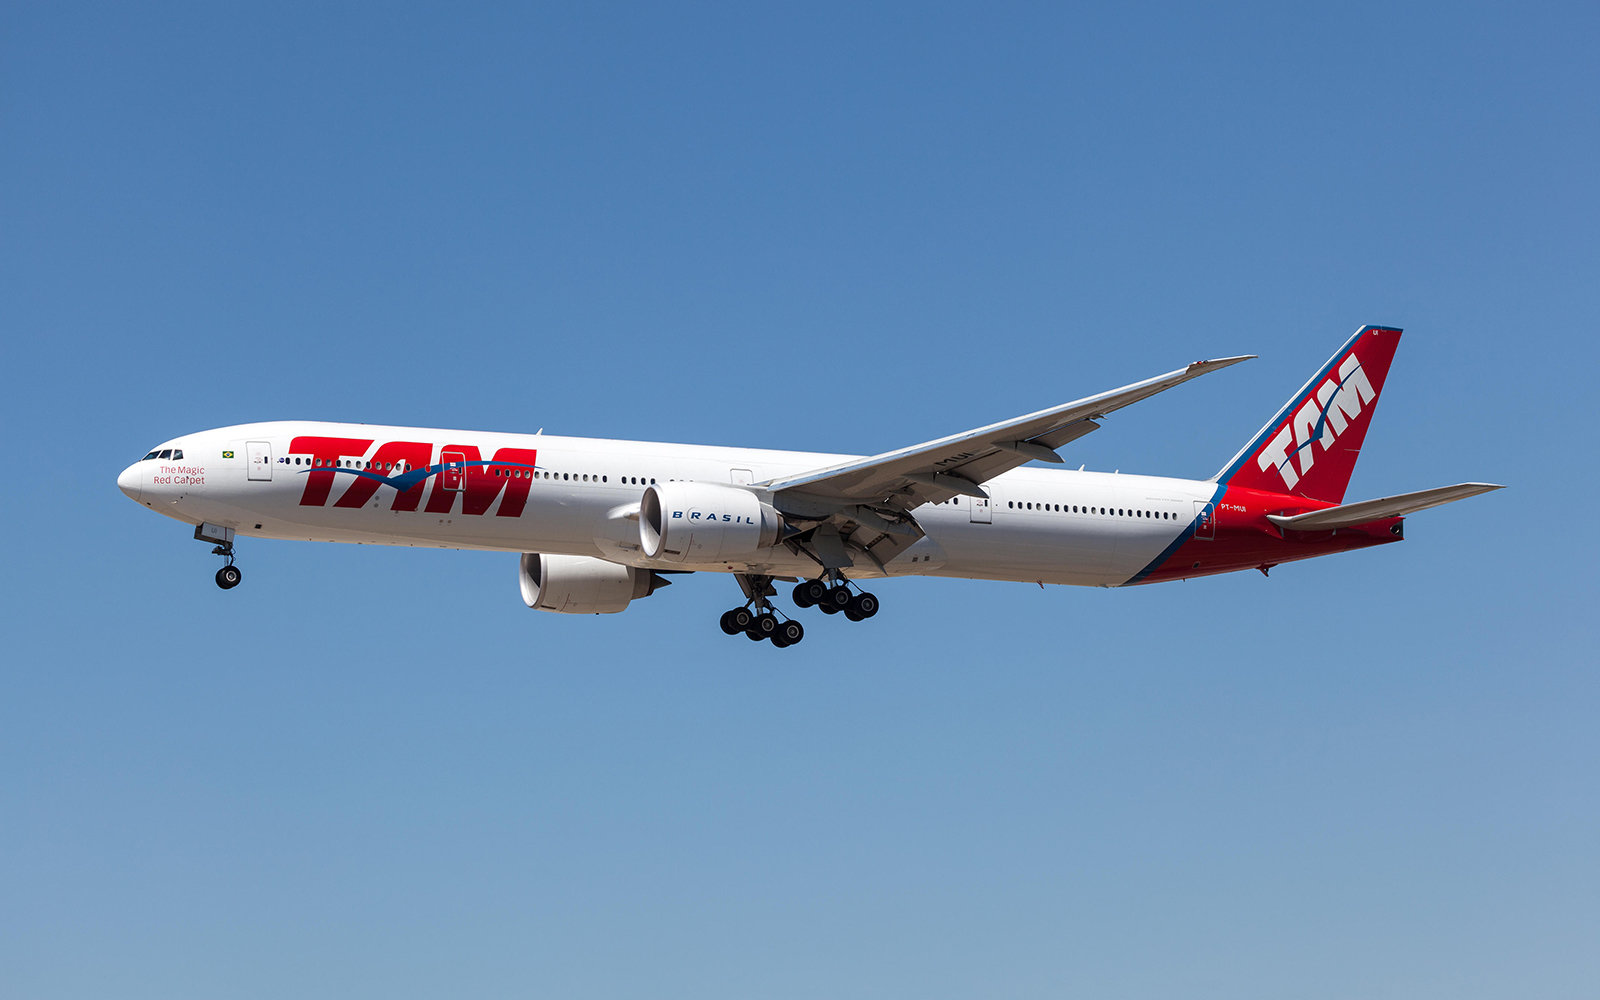 Boeing 777-300ER airplane of the Brazillian TAM airline landing at Frankfurt Airport